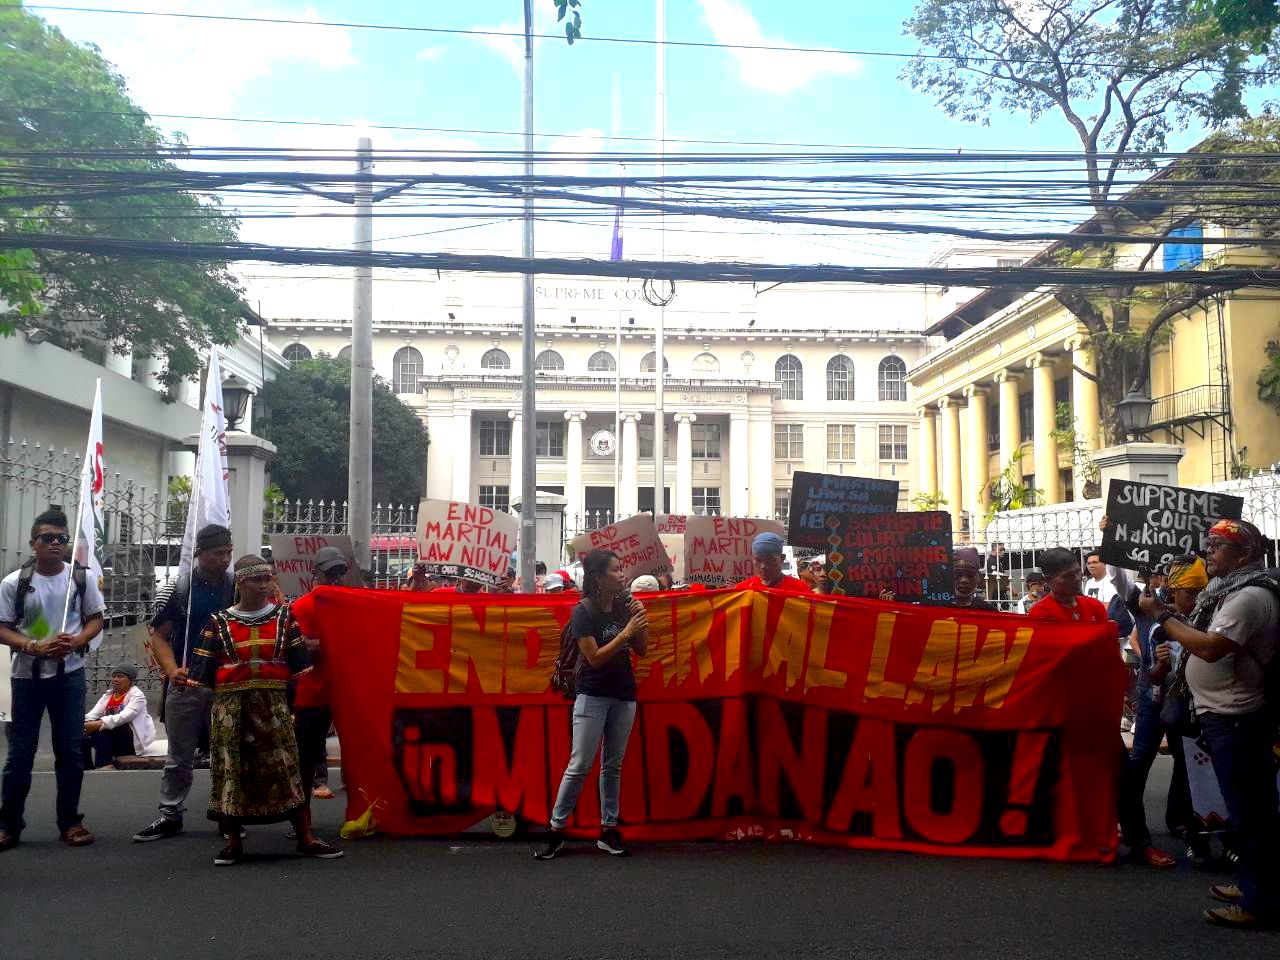 END MARTIAL LAW. A Lumad group holds banners calling for the end of martial law in Mindanao in front of the Supreme Court on January 22, 2019. Photo by Lian Buan/Rappler